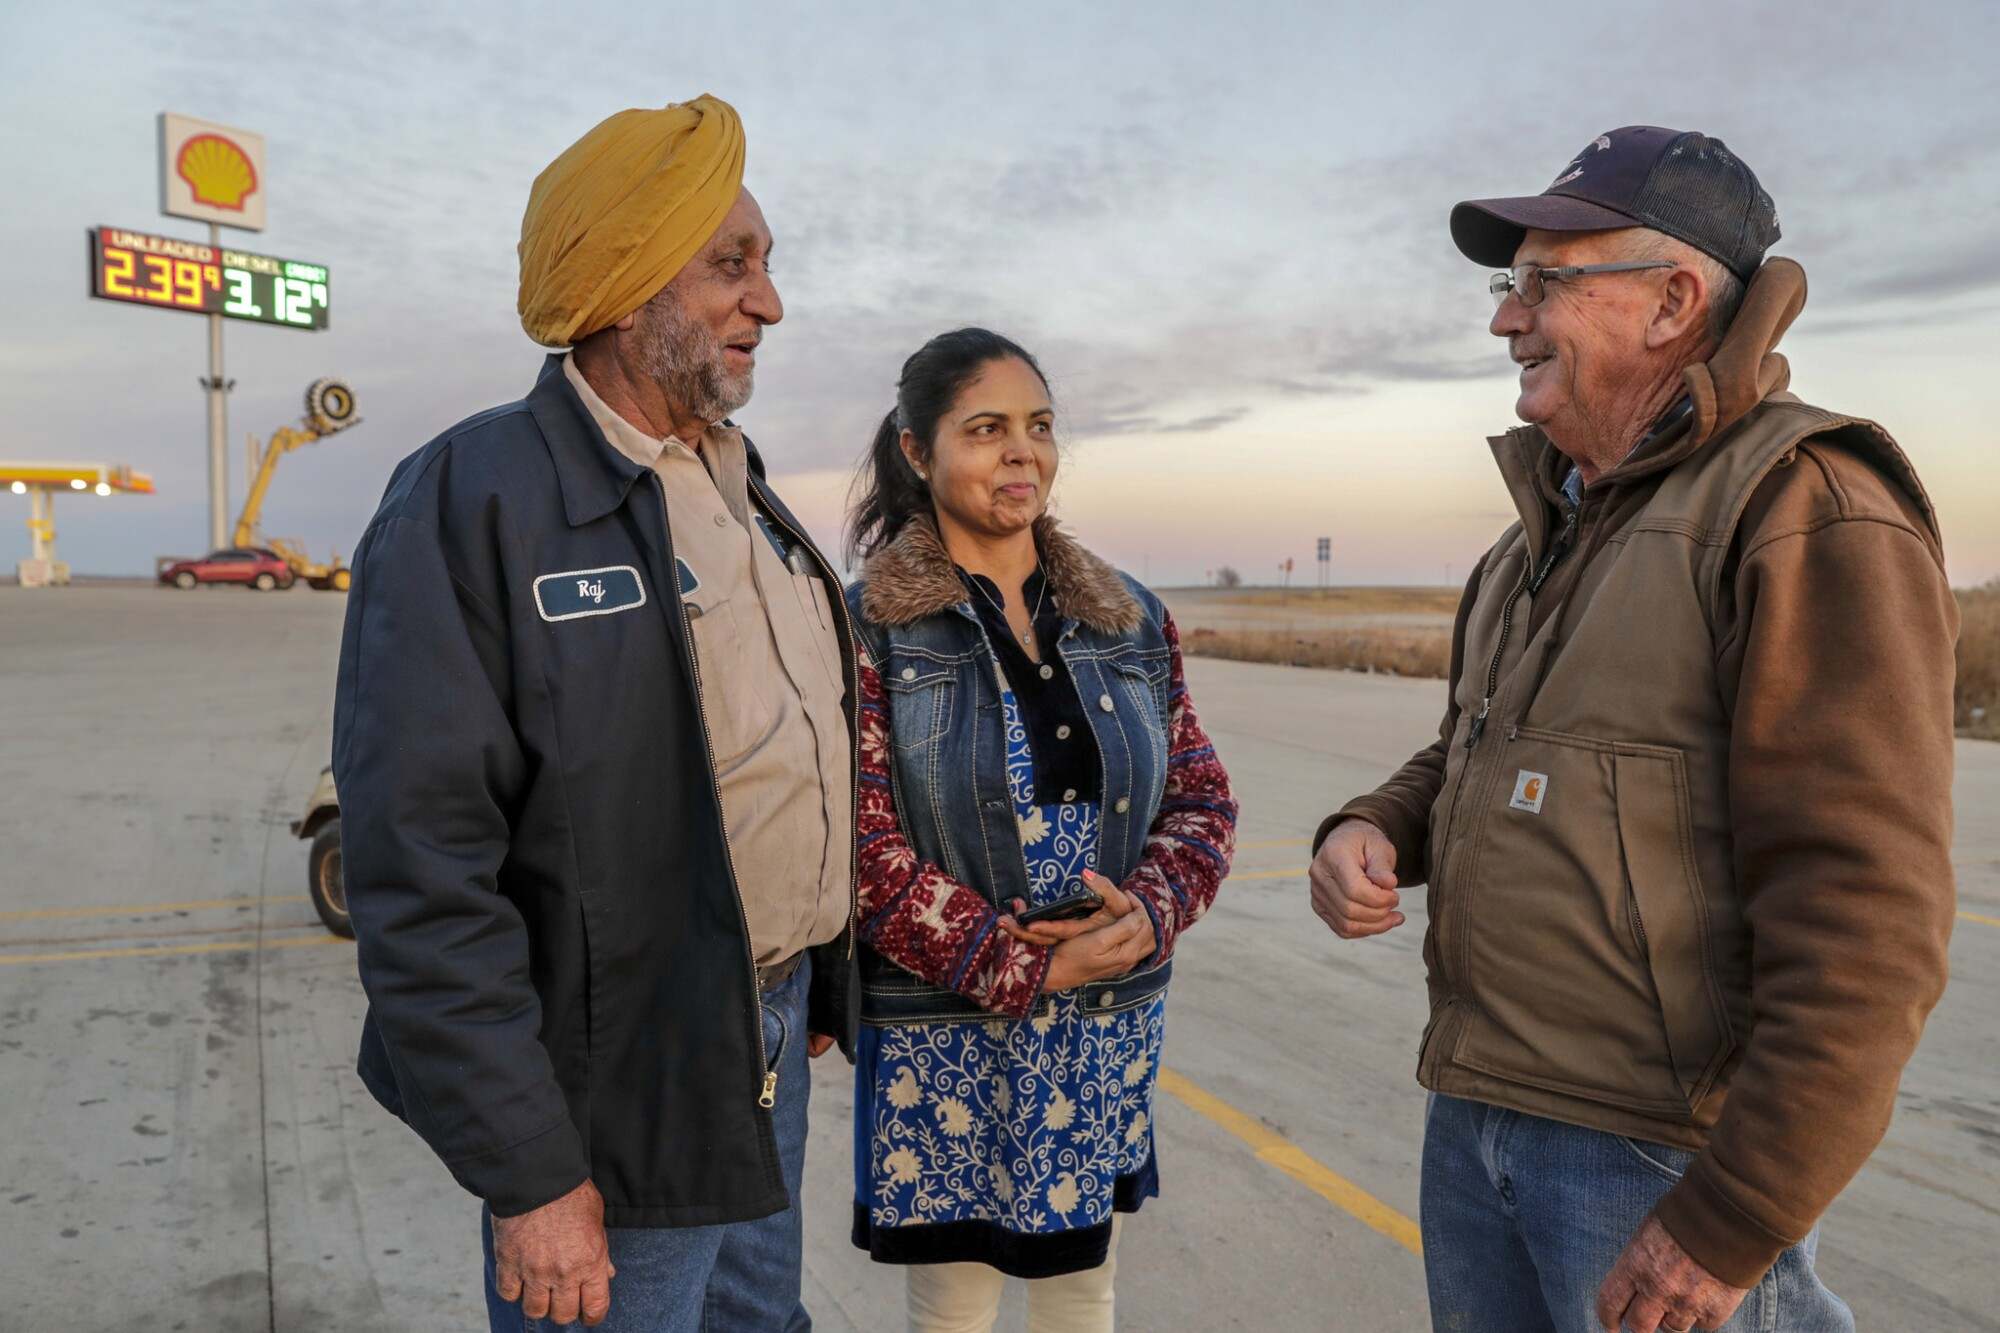 Truck Stop 40 owners Raj Chhoker, left, and his wife, Harpreet Chhoker, chat with their neighbor Kenny Drake.